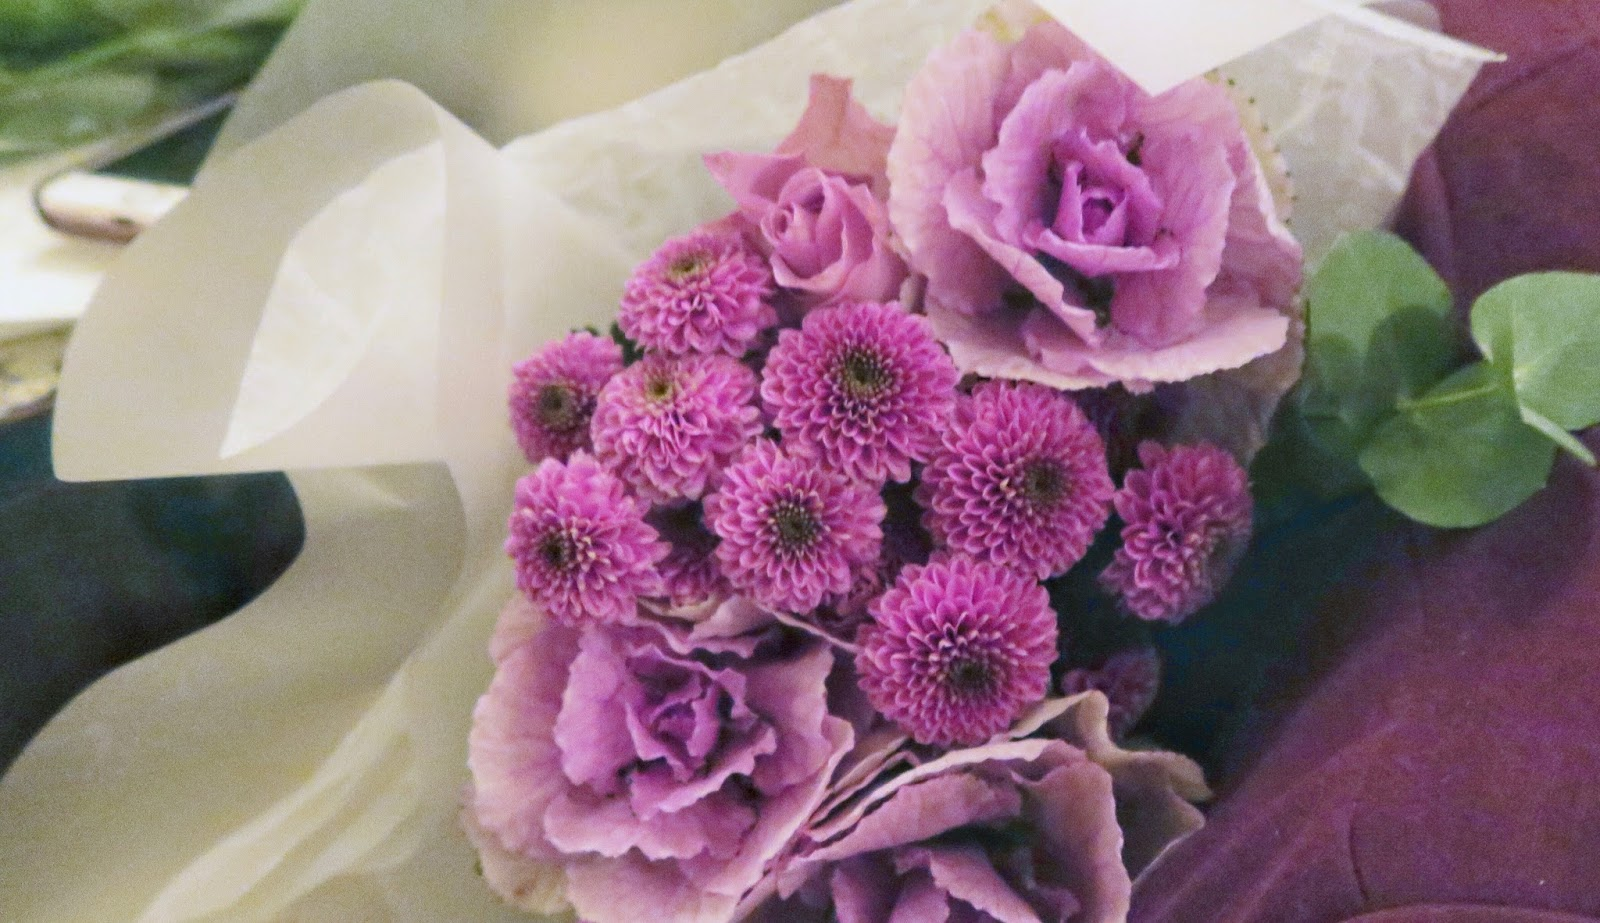 how to turn your day around when you're in a bad mood, on francescasophia.co.uk; a bunch of flowers in their wrapping; the flowers are pink, and are cabbage roses